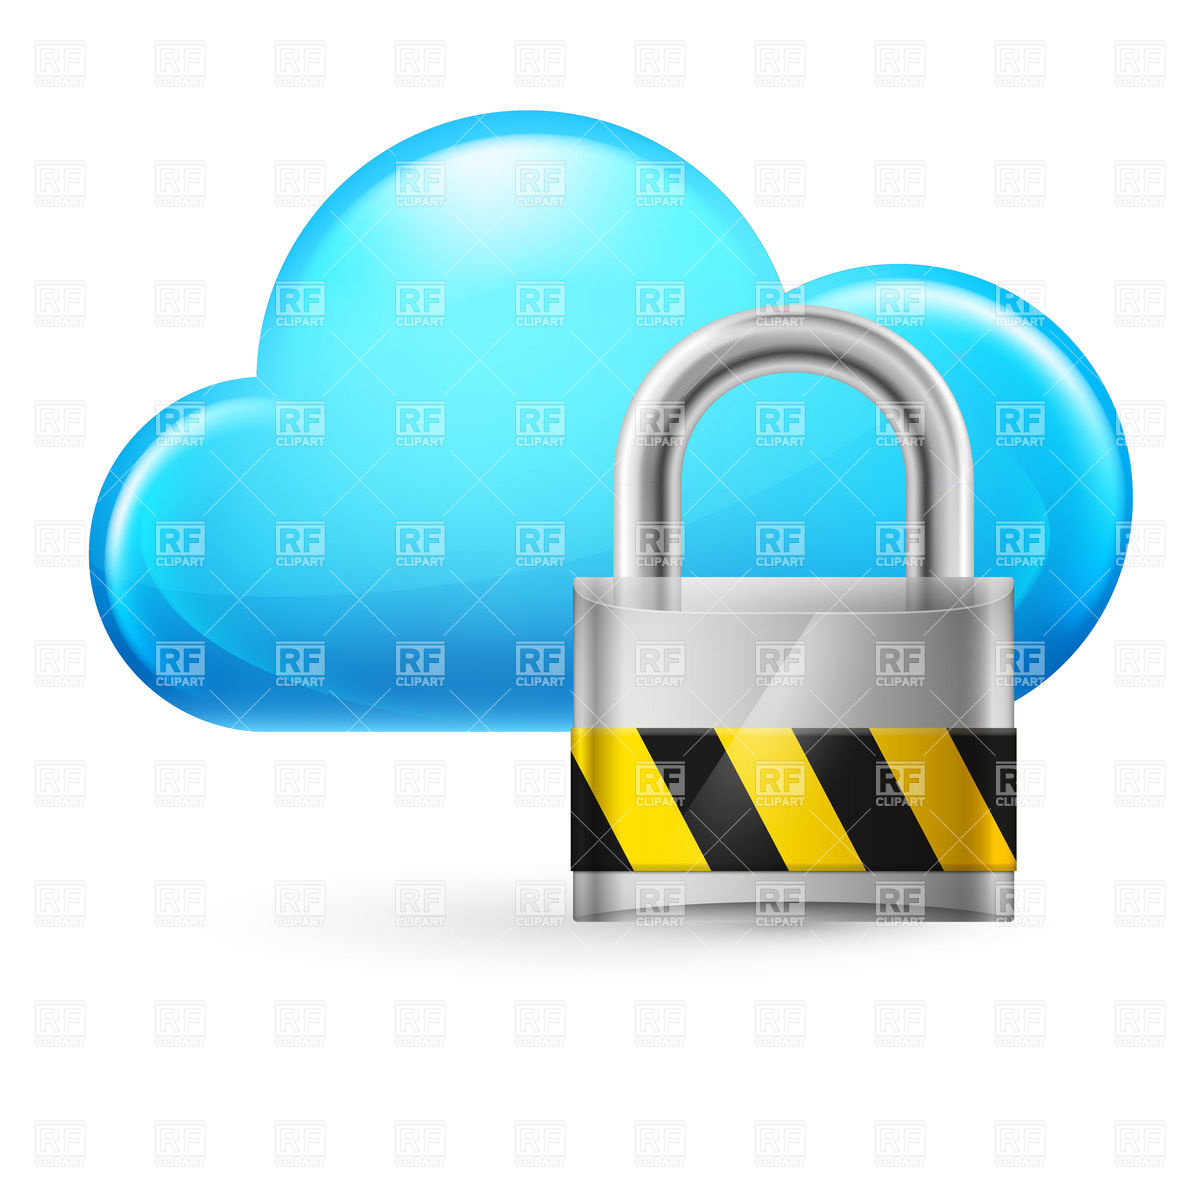 1200x1200 Cloud Computing Icon With Padlock Vector Image Vector Artwork Of